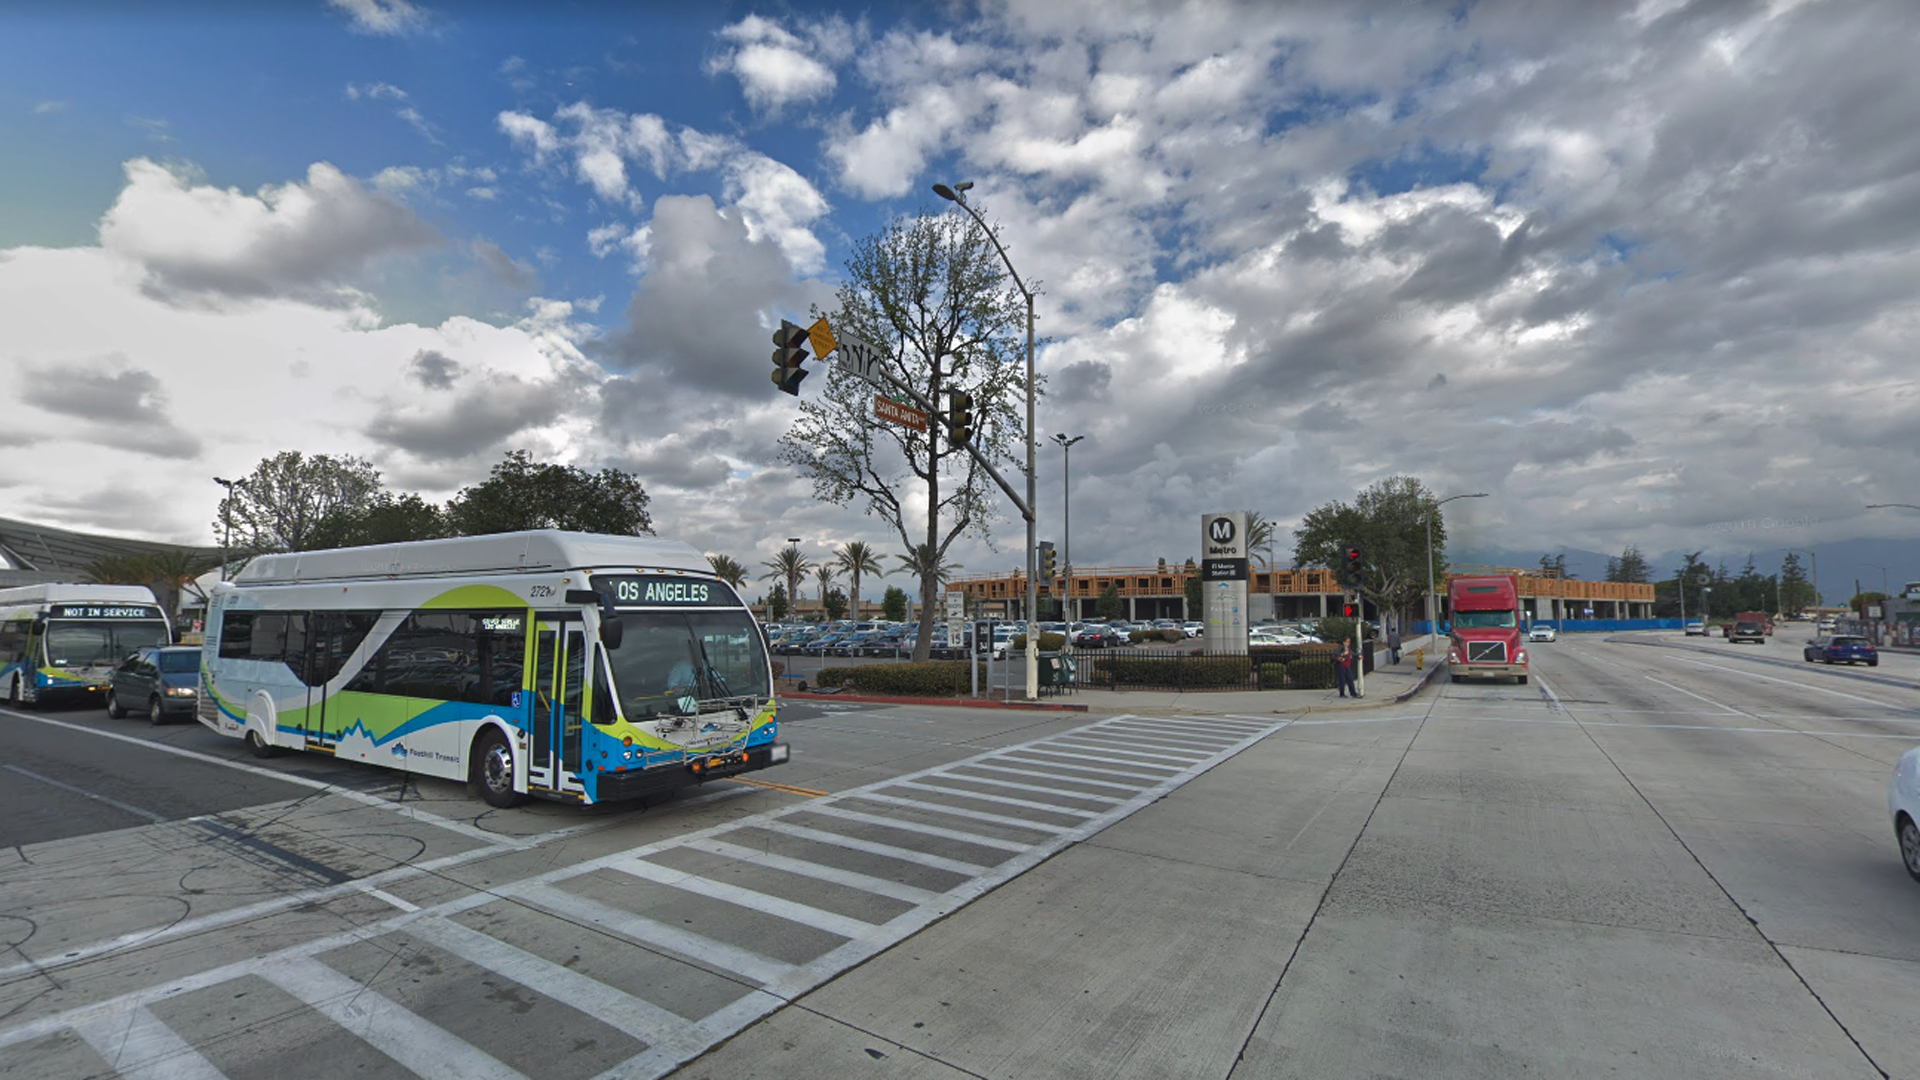 The LA Metro El Monte Station, as picture in a Google Street View image.